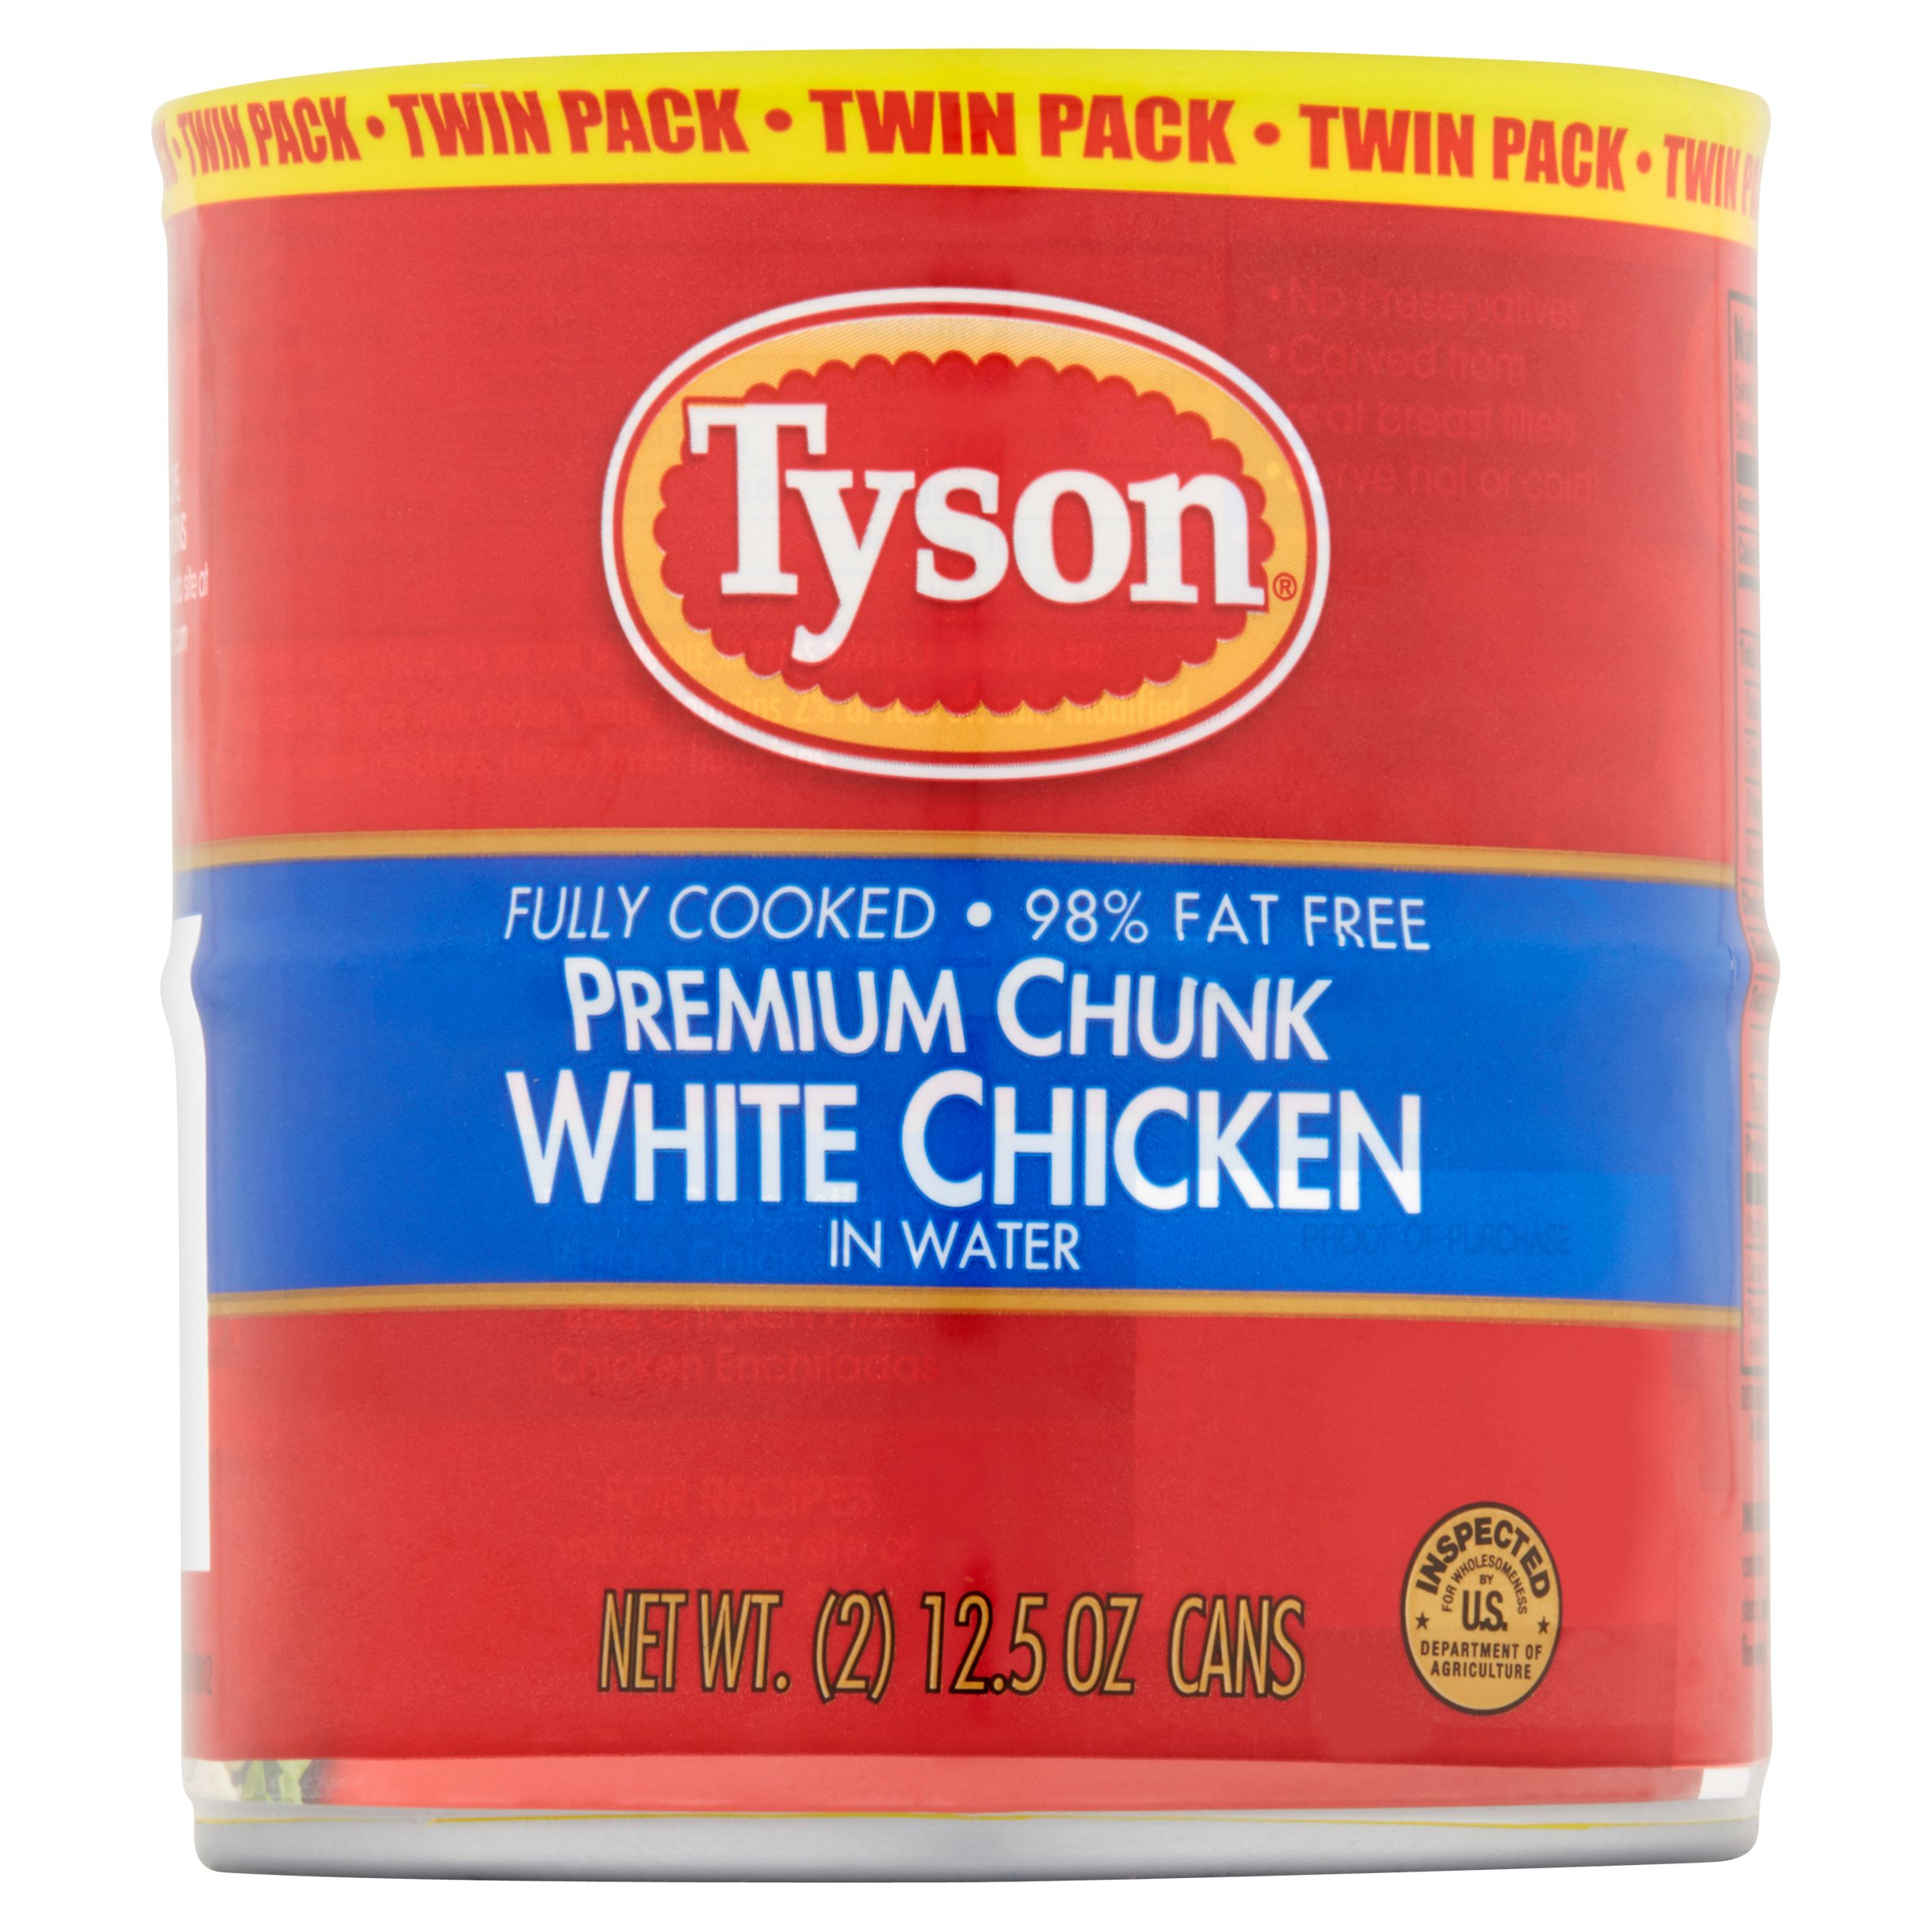 Tyson Premium Chunk White Chicken in Water Twin Pack, 2 count, 12.5 oz